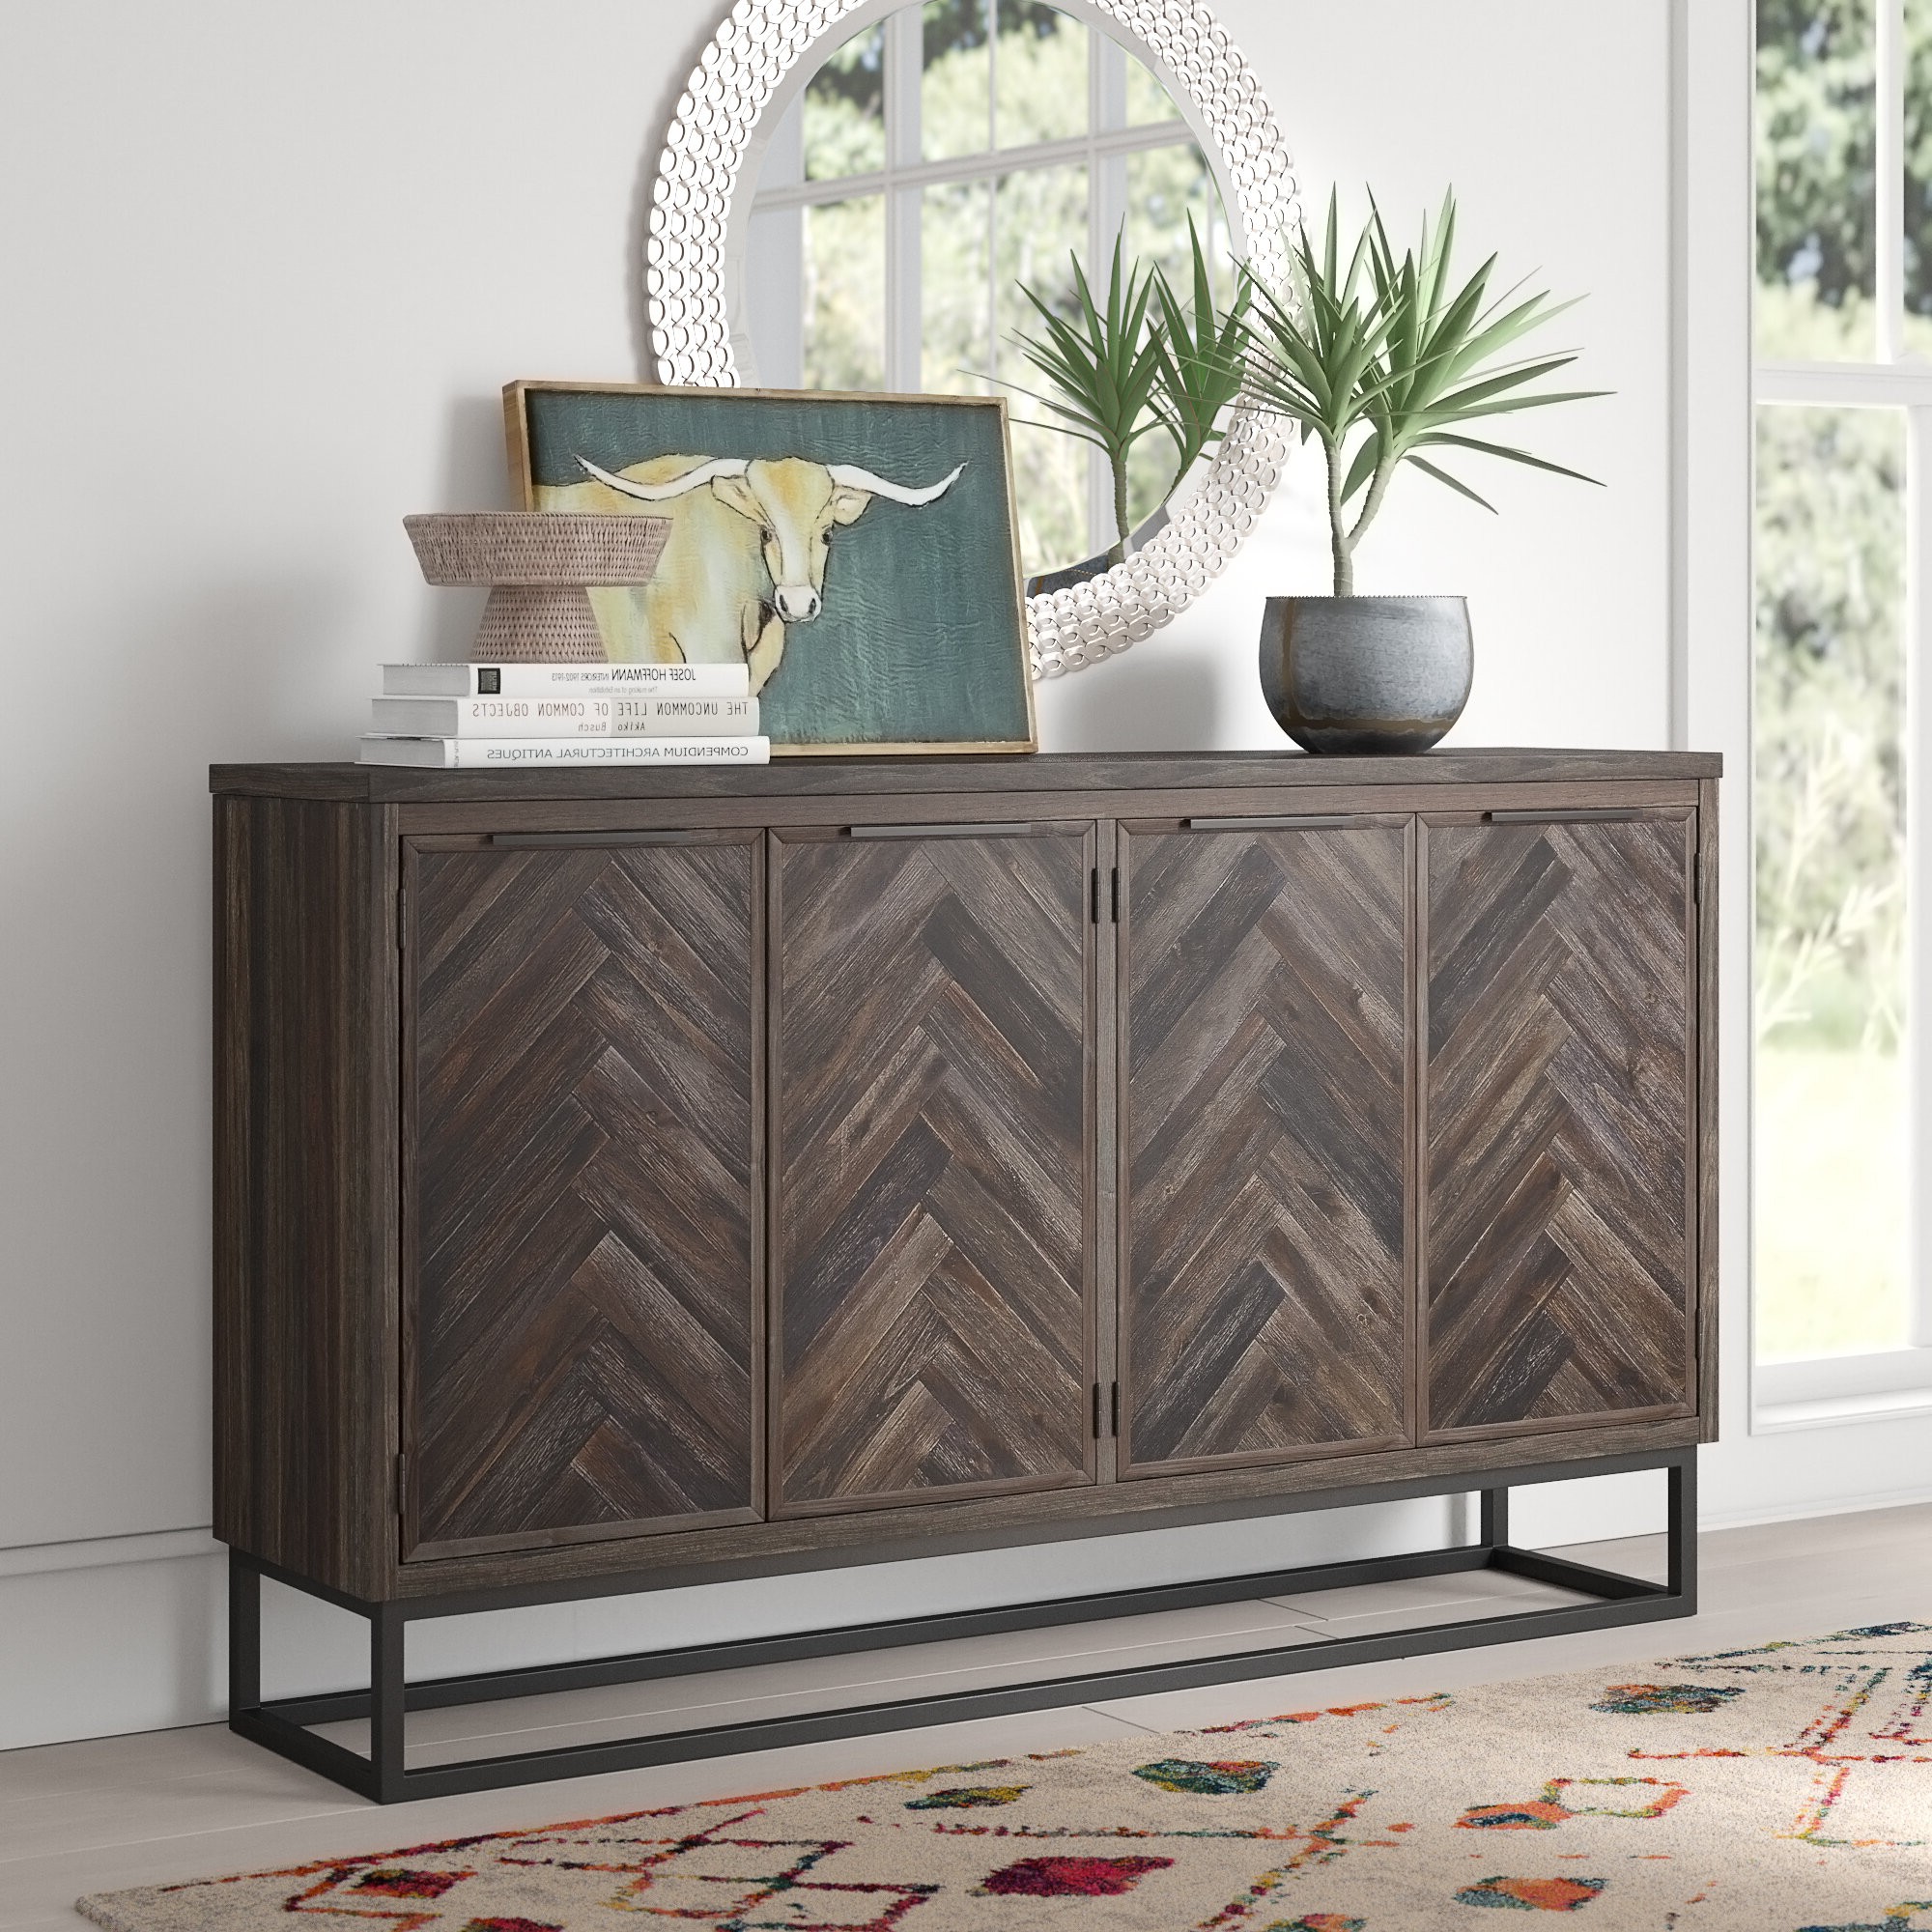 Mistana Kaelyn Credenza Intended For Candide Wood Credenzas (View 17 of 20)